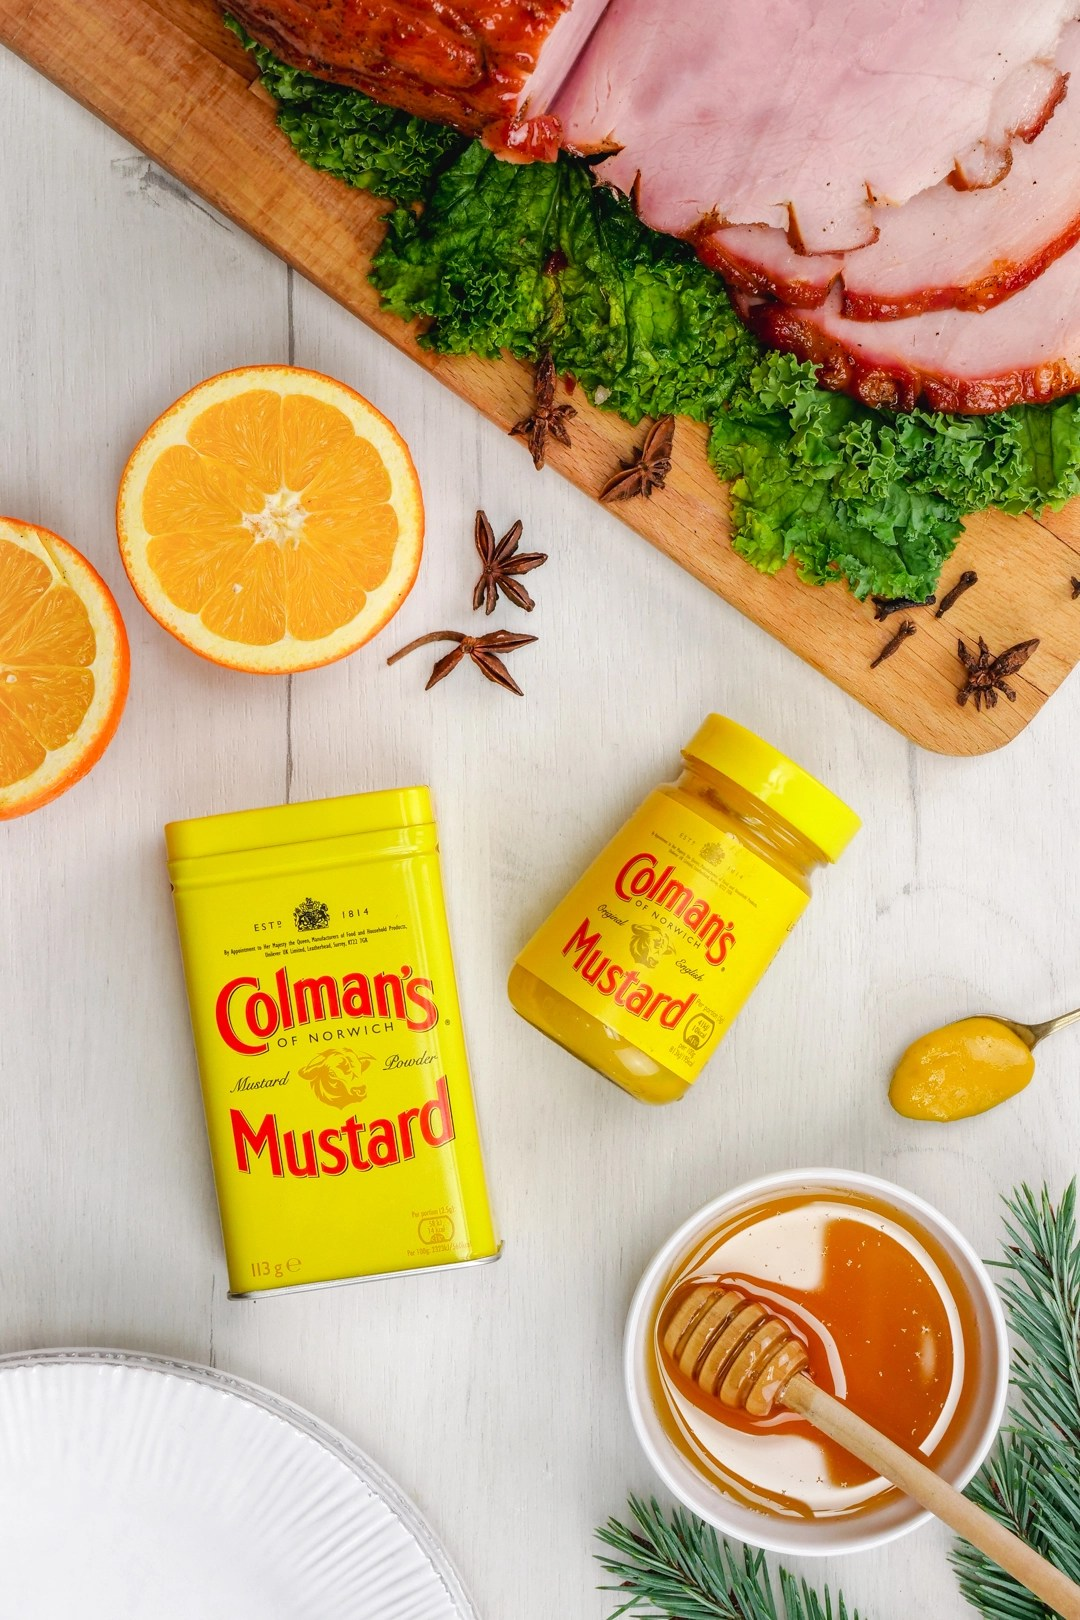 Colman's mustard and some holiday goodies and honey baked ham recipe